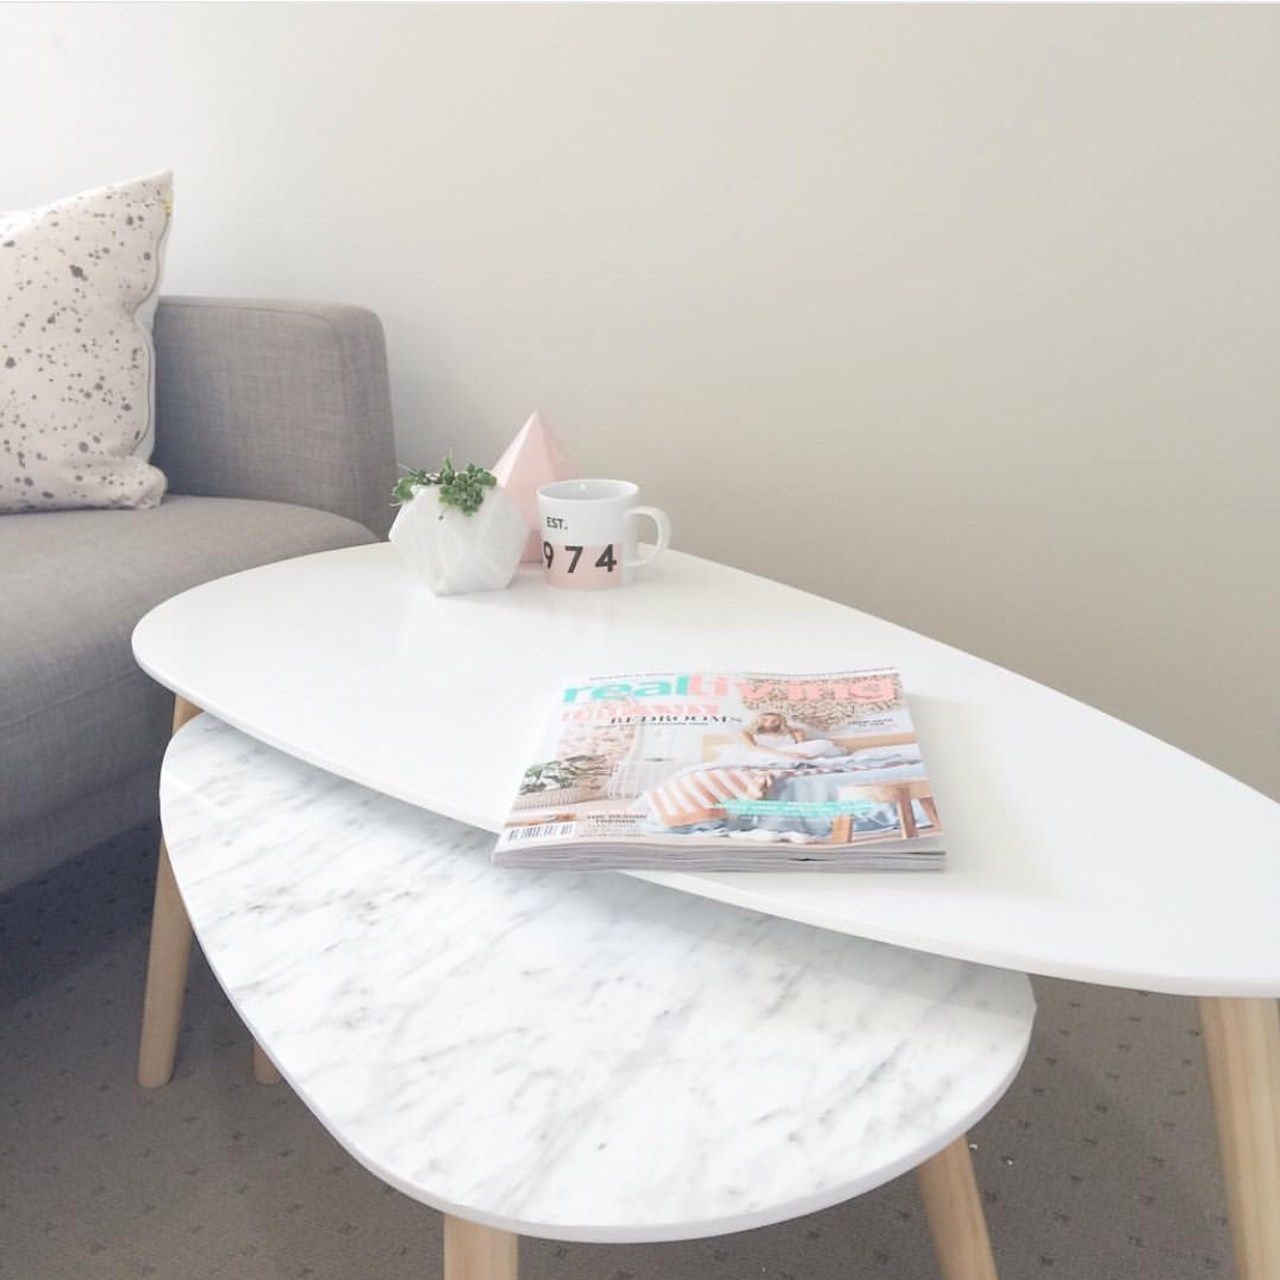 Kmart Hack Our Urban Box D I Y Kmart Coffee Table